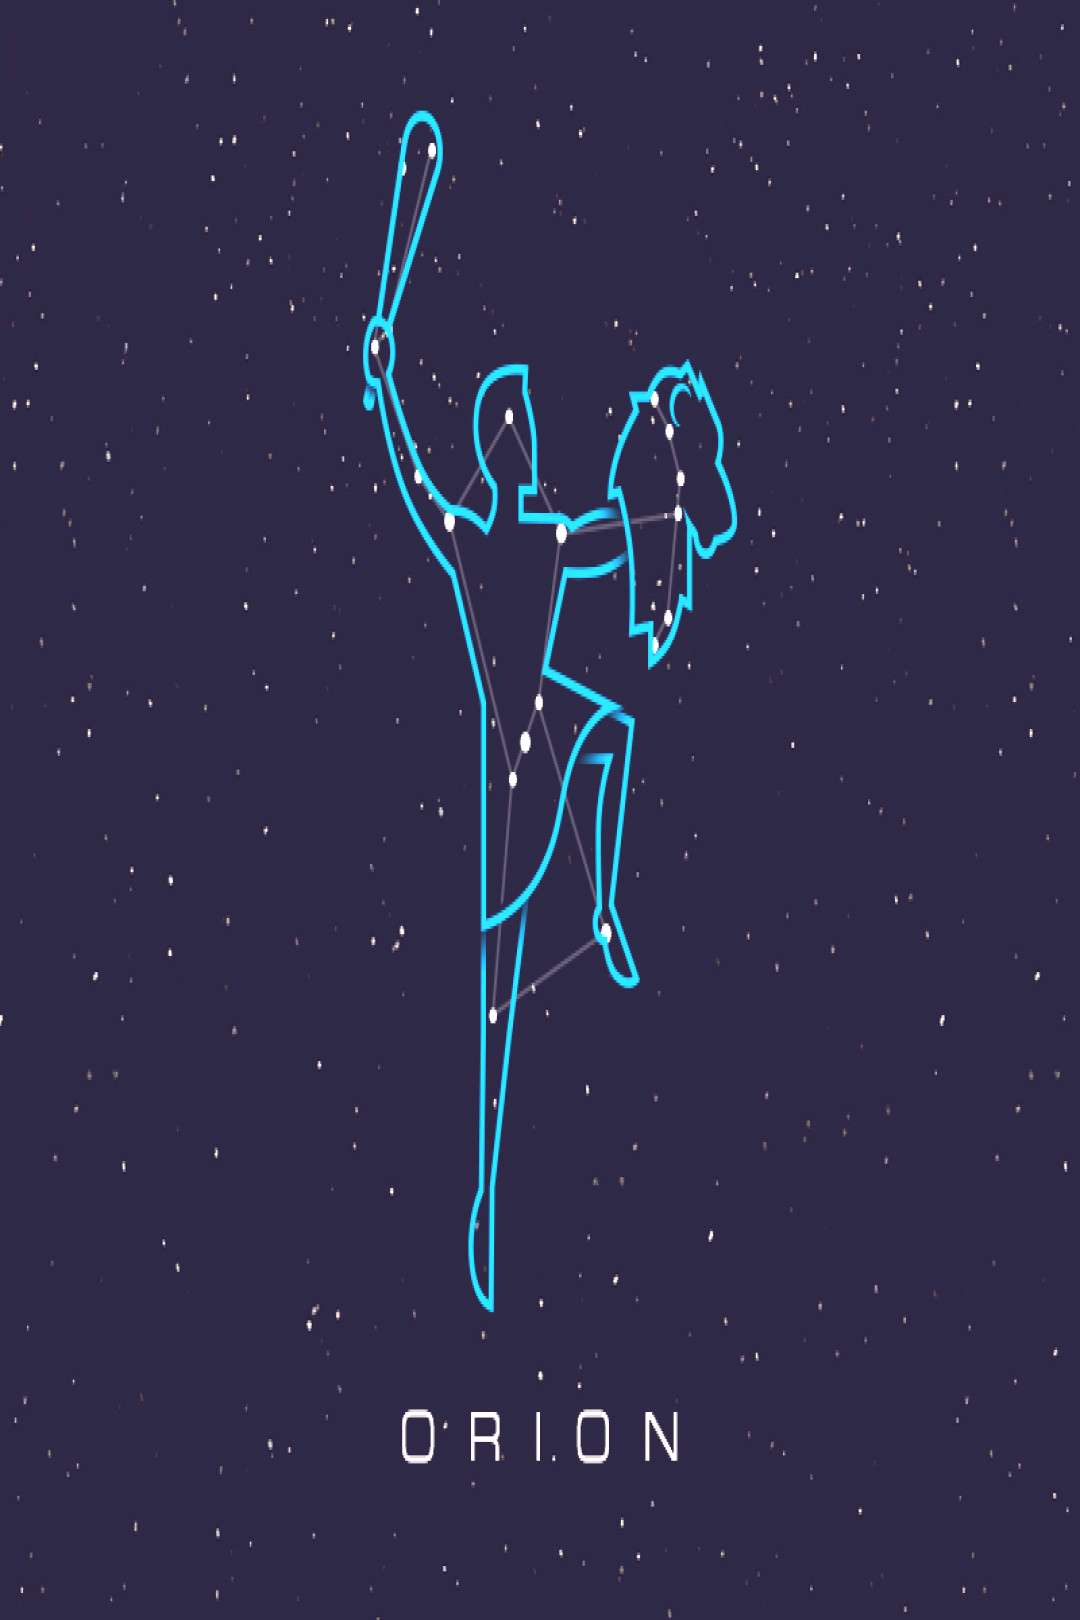 Constellations - Orion, , Constellations - Orion, ,